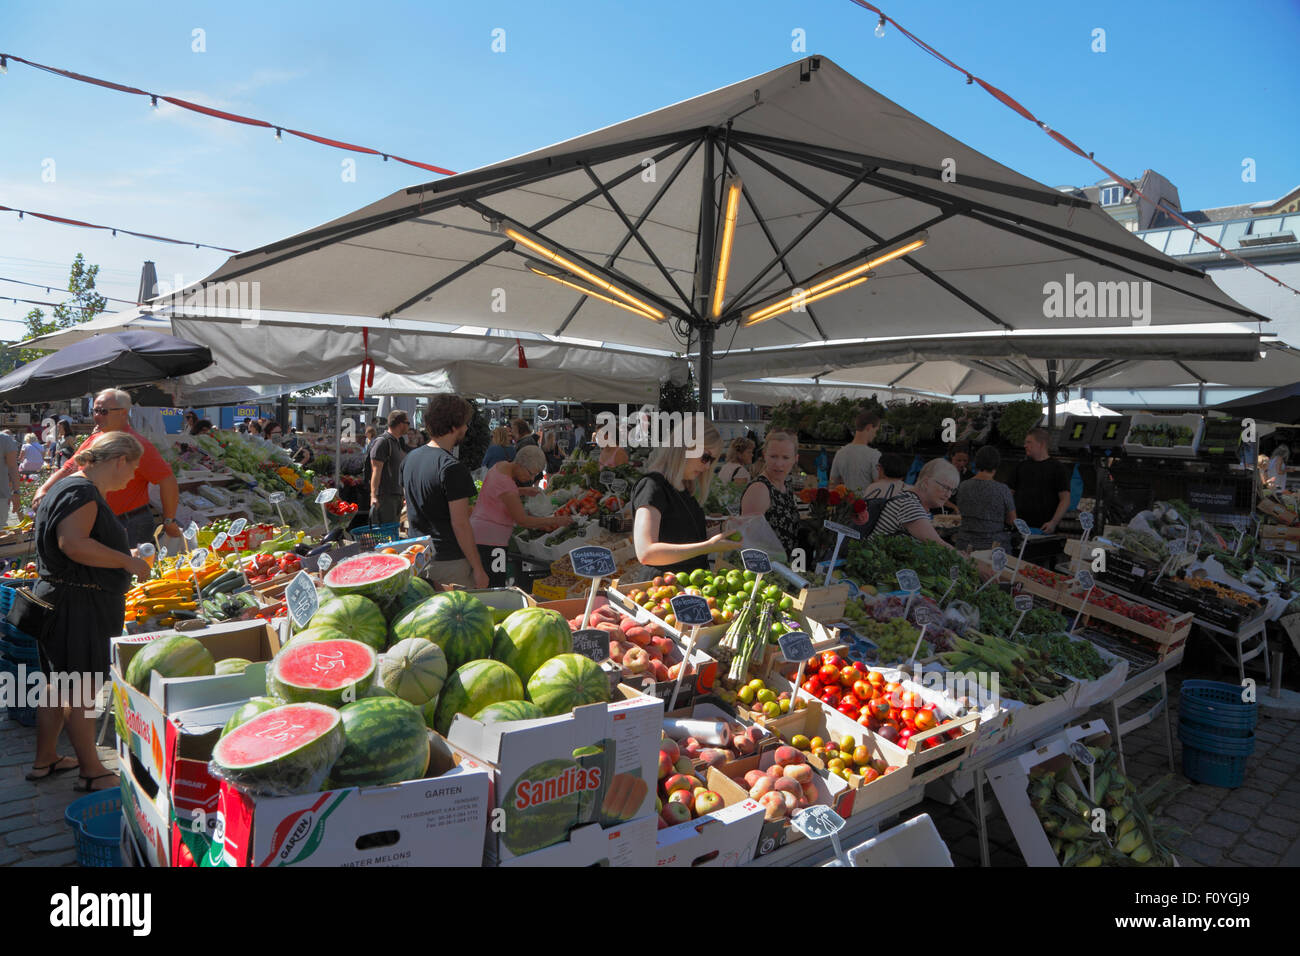 Fruit and vegetable stalls at Torvehallerne, the covered food market,  at Israels Plads in Copenhagen on a sunny - Stock Image